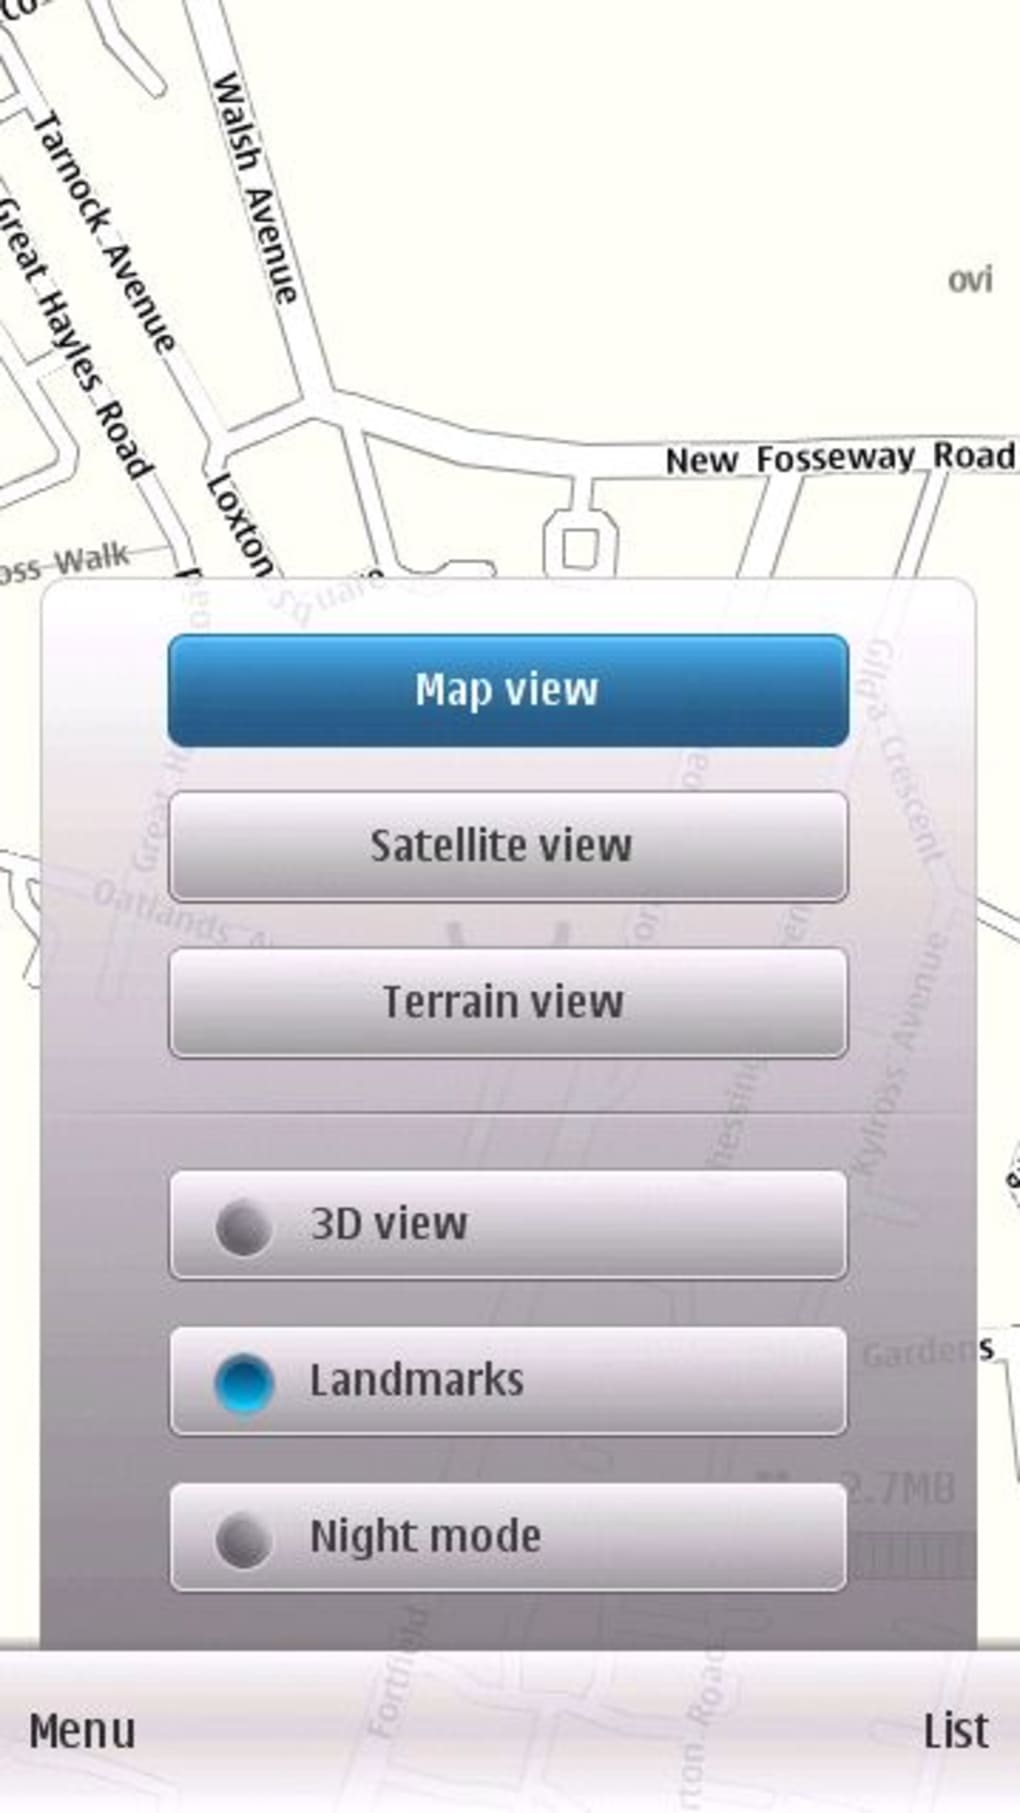 Nokia 5233 google map application free download.